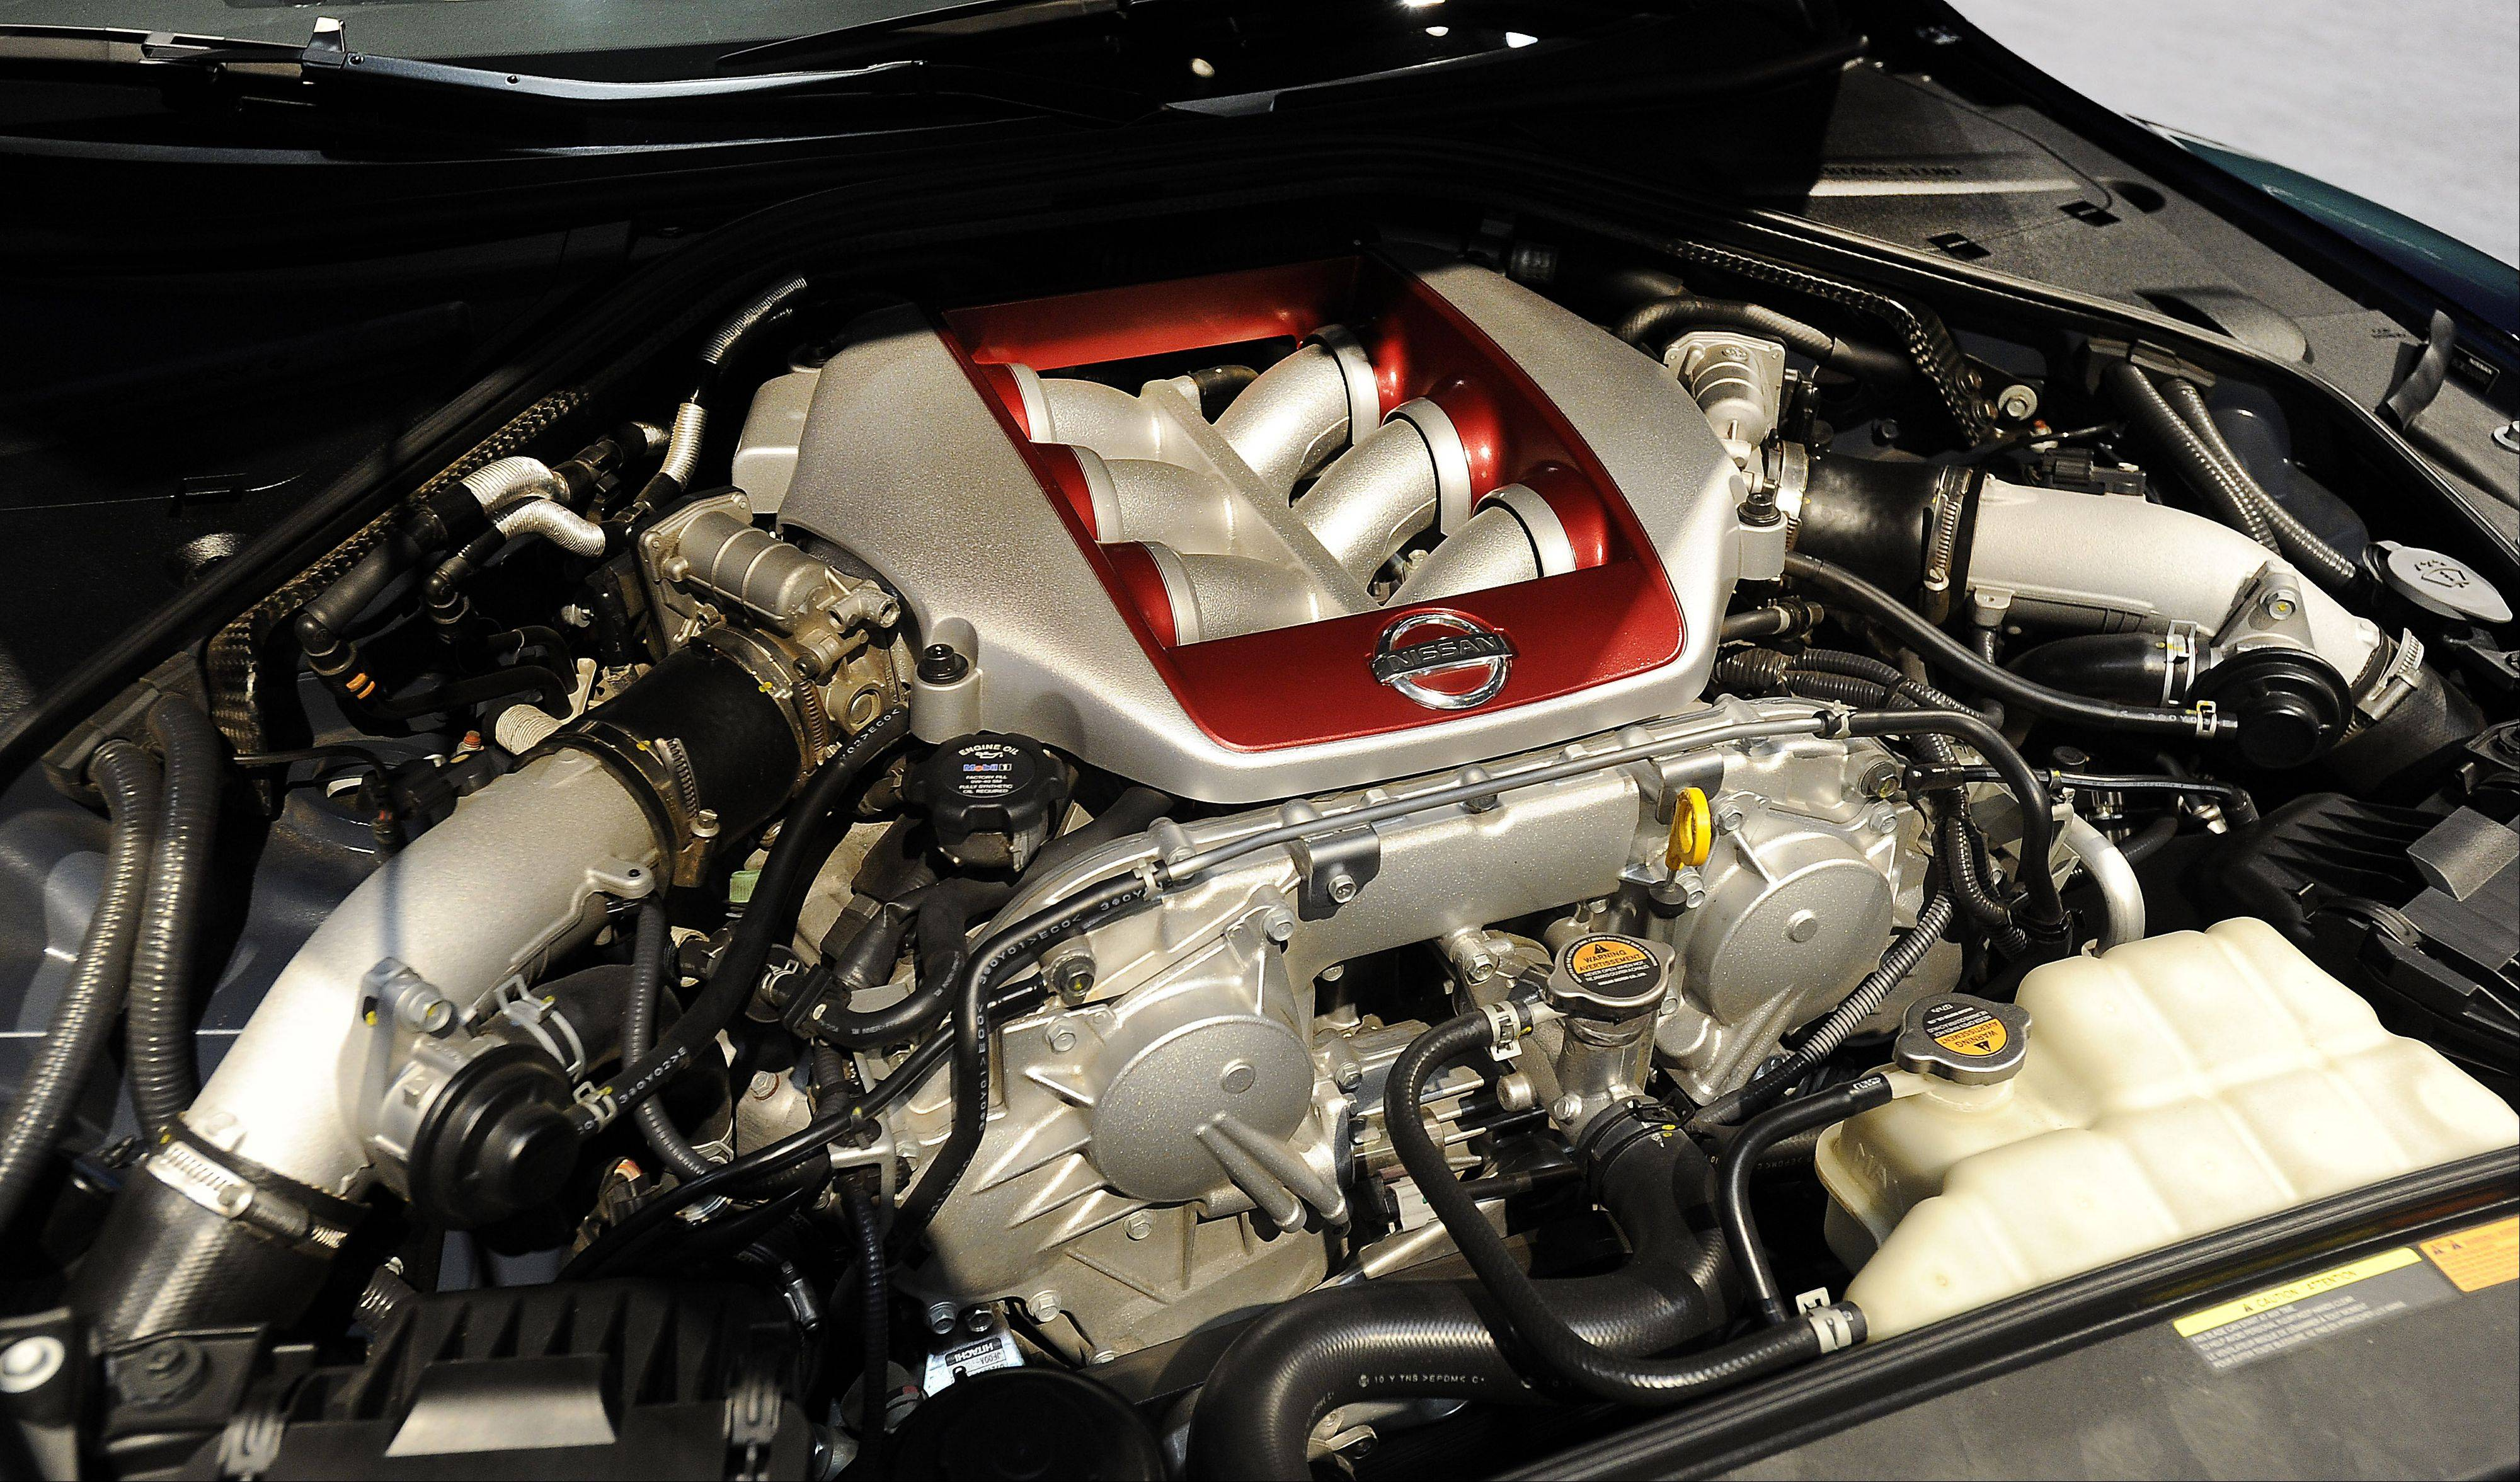 The engine of the Nissan GTR is on display.